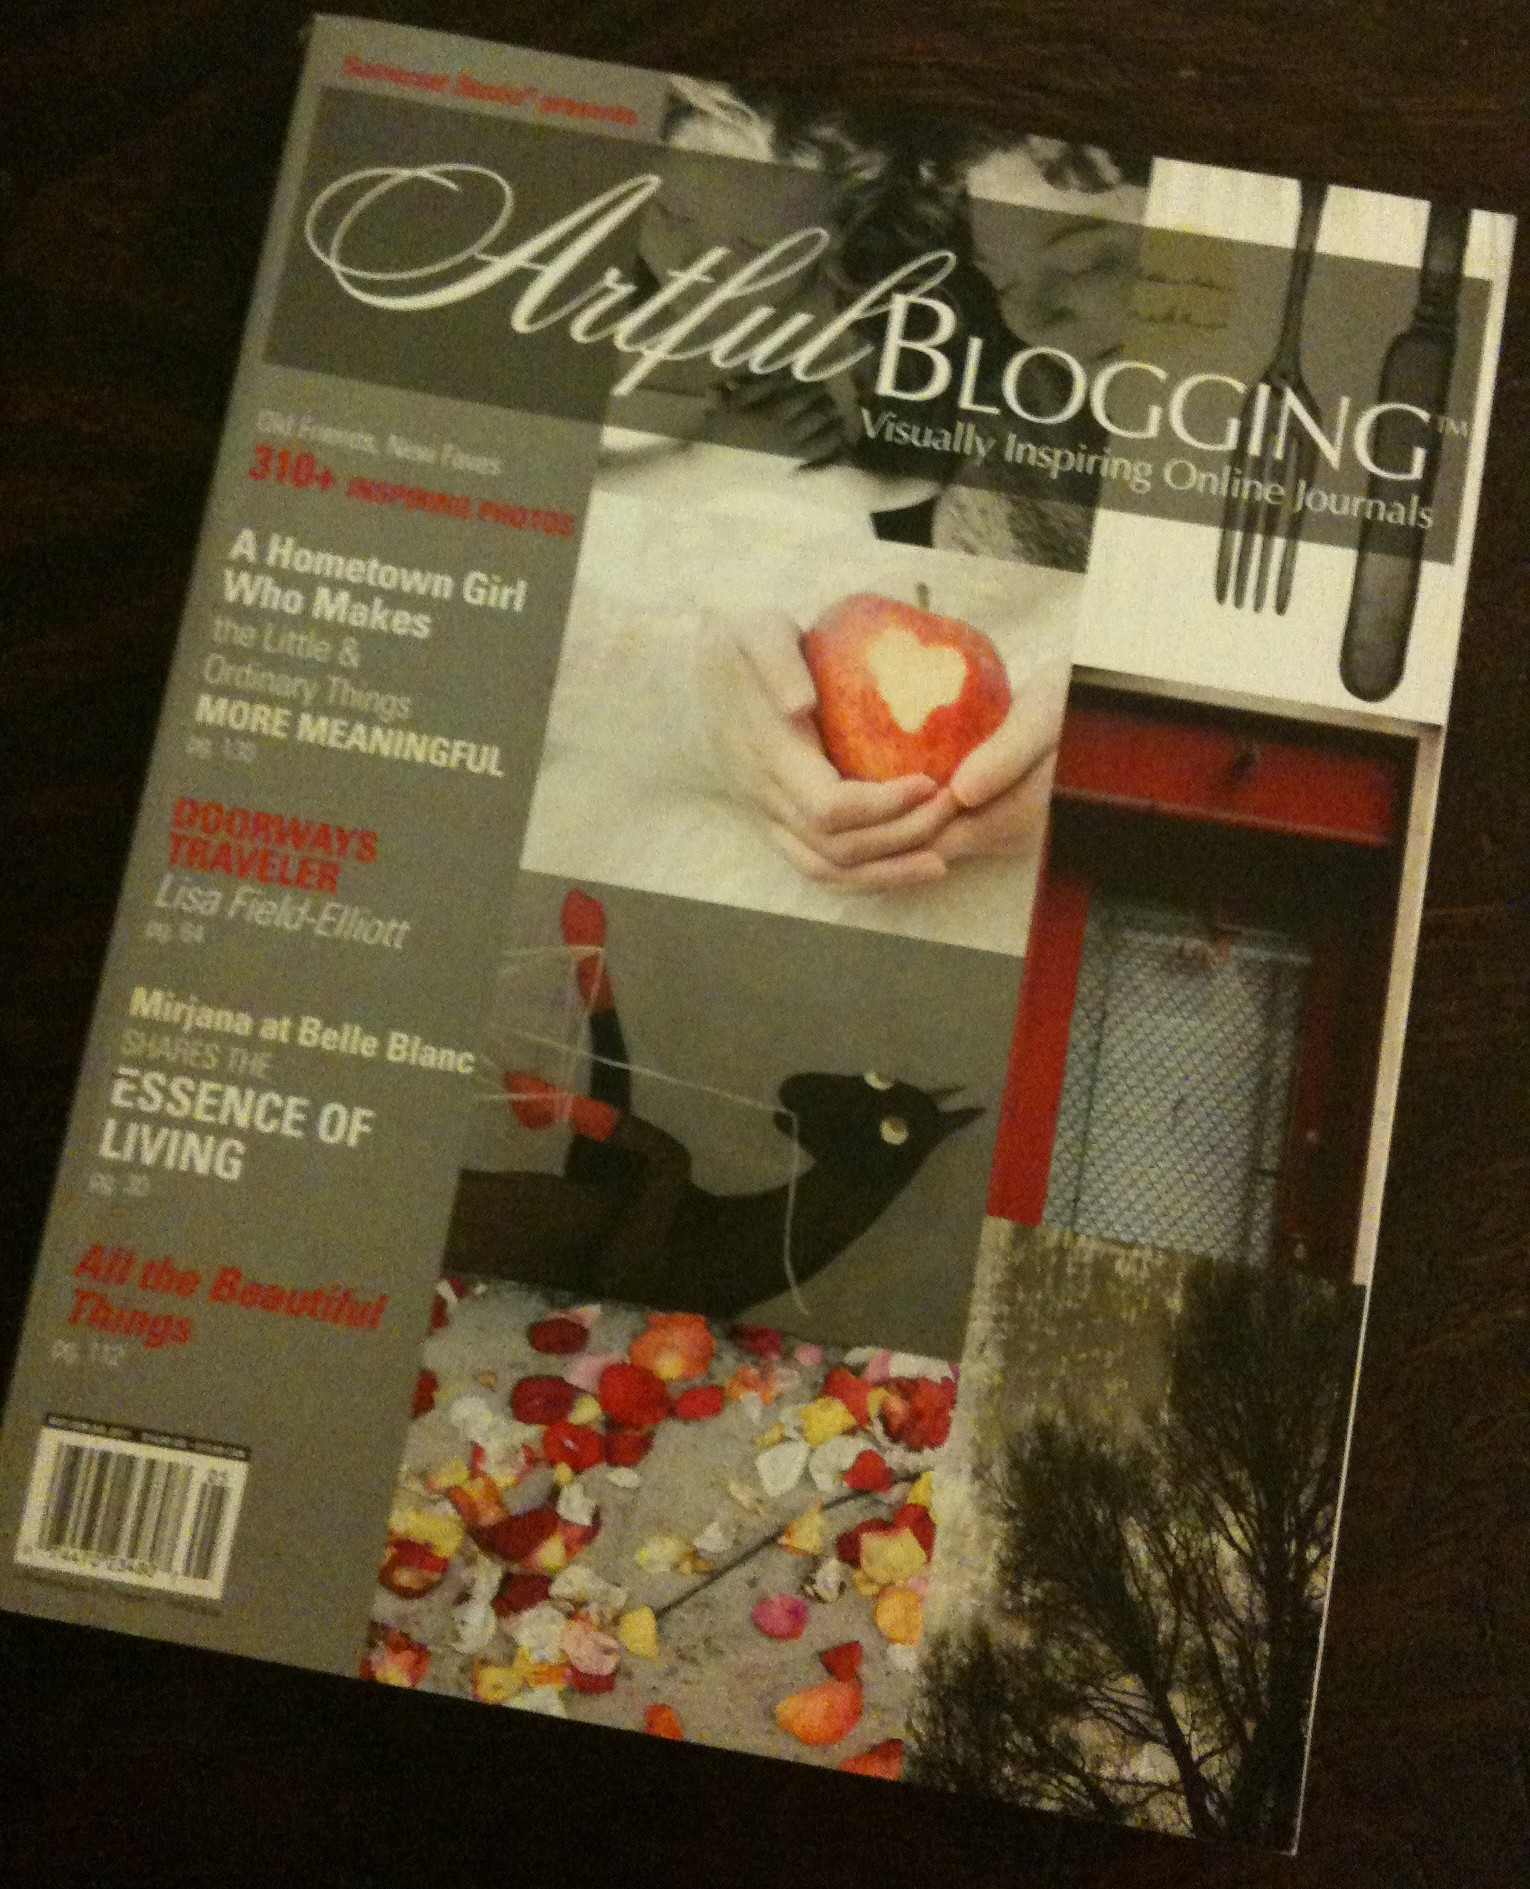 Inspiring Others: 5 Ways Artful Blogging Can Strengthen Your Readership